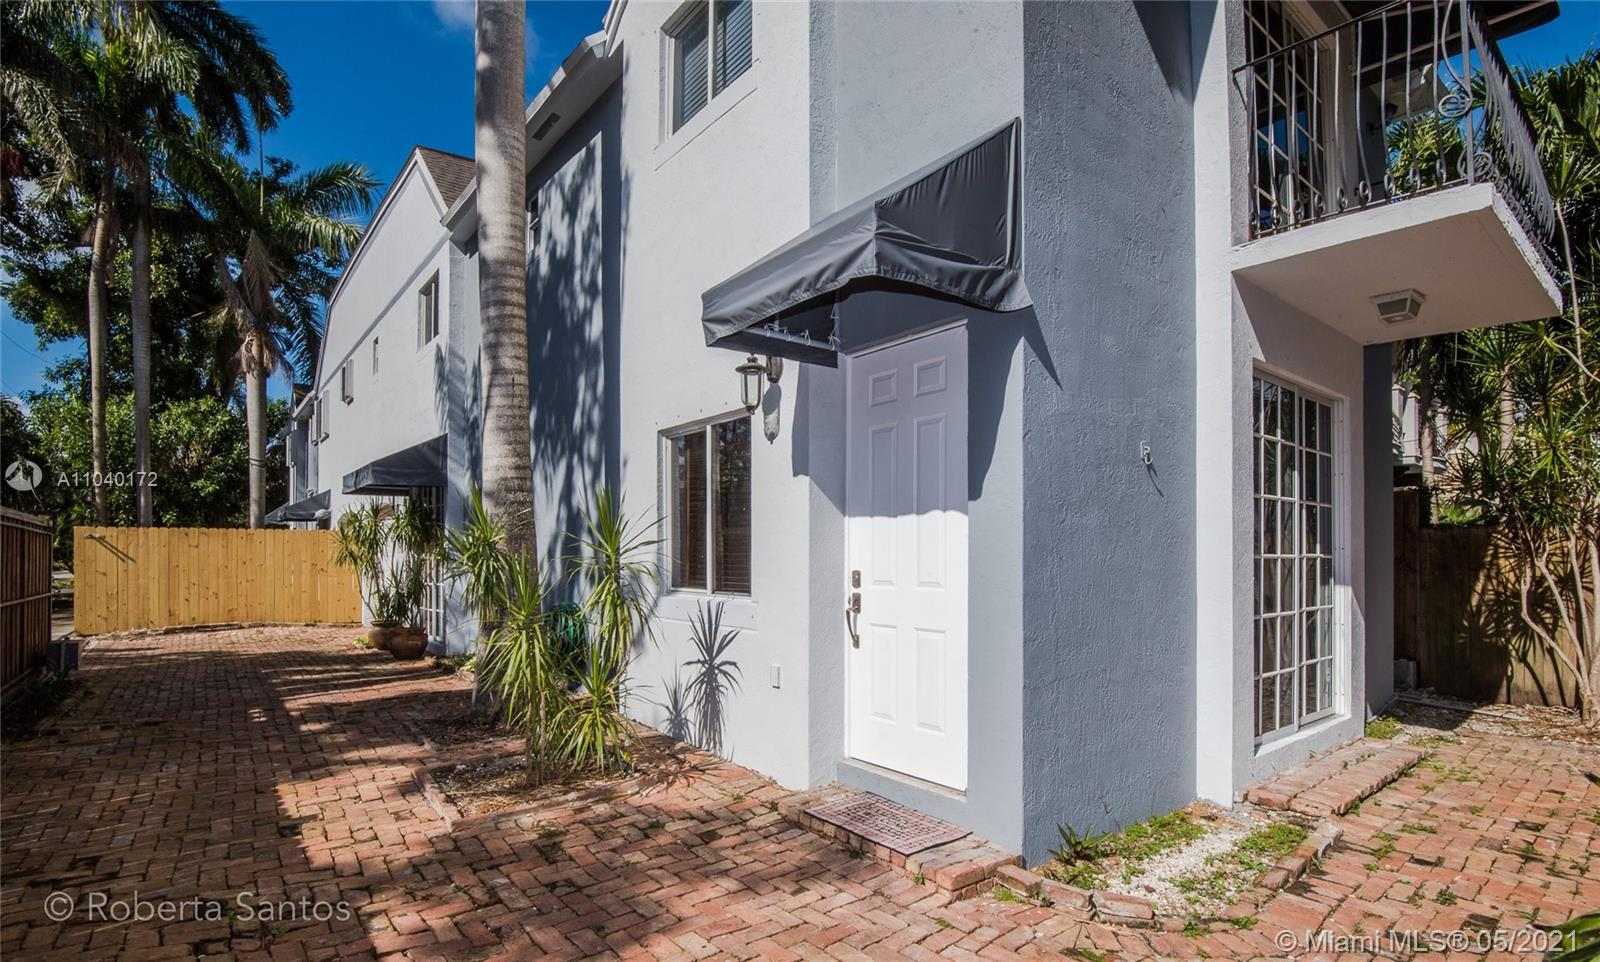 Lovely 3 bedroom townhouse with split floor plan on the second floor. Remodeled kitchen with stailess steel appliances. Excellent location: quiet street with walkable distance to Blance park, shopping at new Coco walk area, nice restaurantes, the heart of  Coconut Grove. This townhouse is a must see.